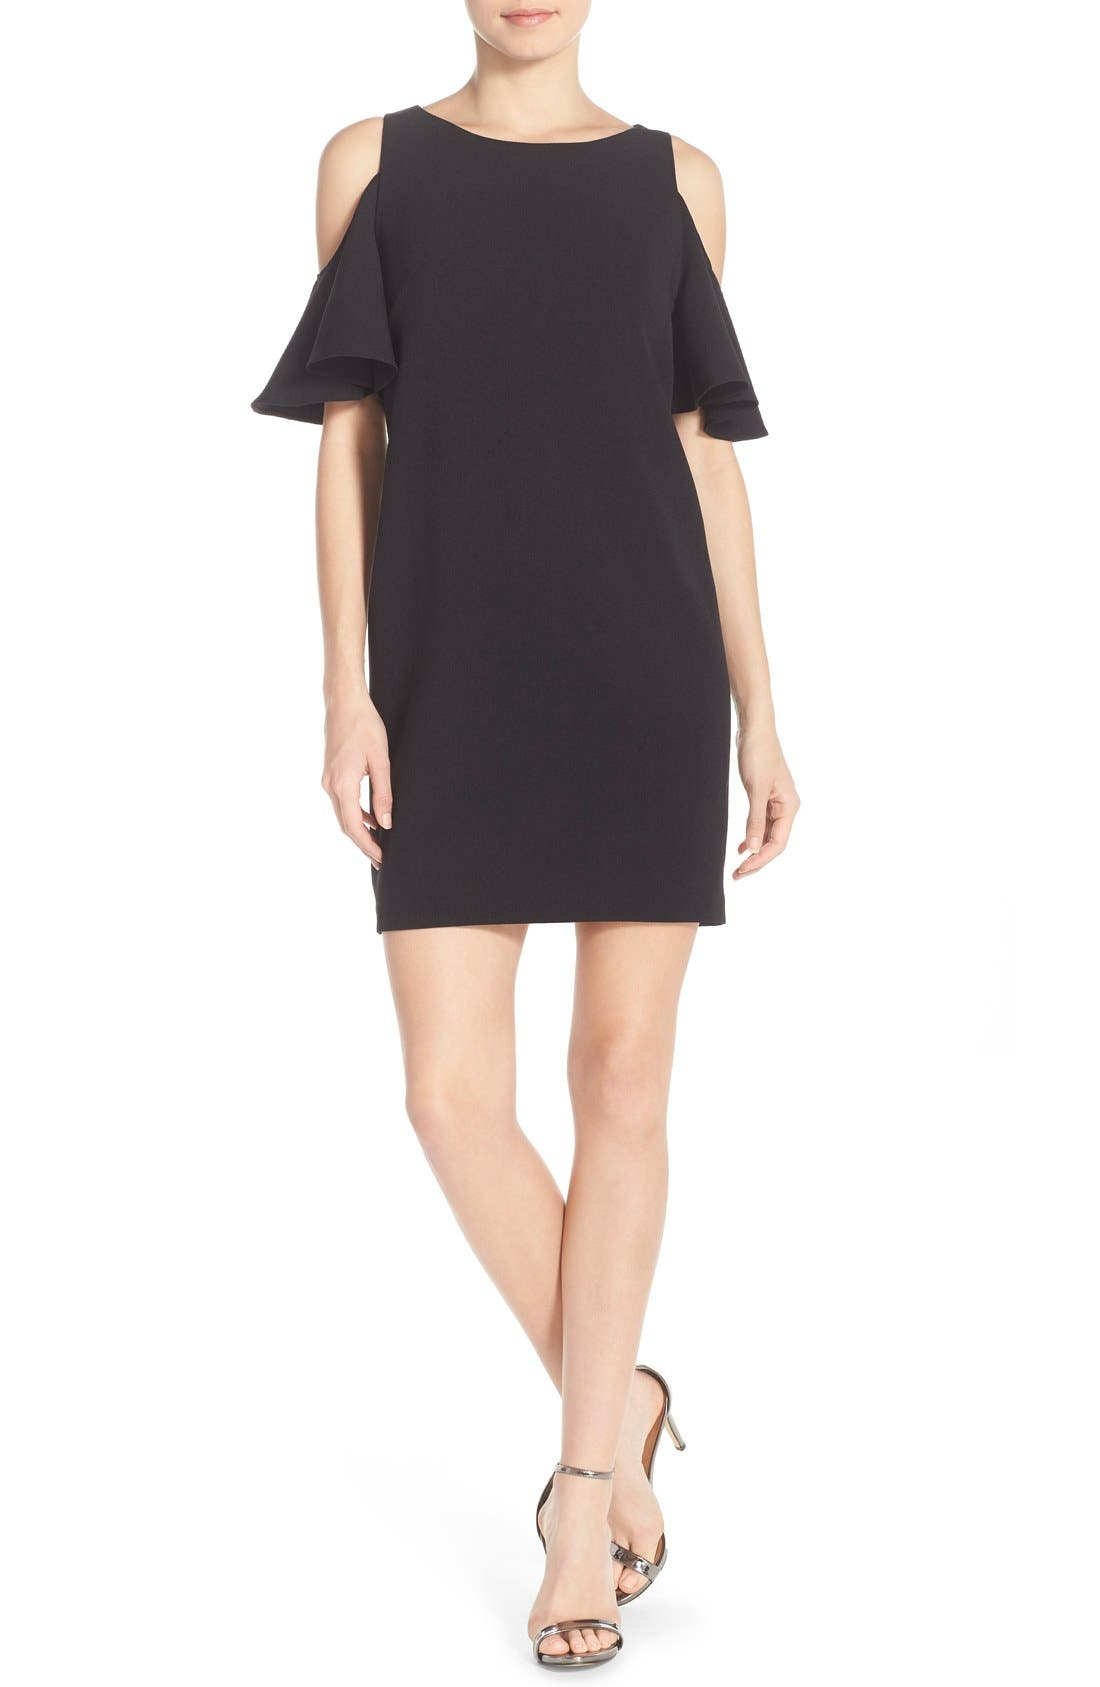 'Peek-A-Boo' Cold Shoulder Shift Dress,                             Alternate thumbnail 2, color,                             001